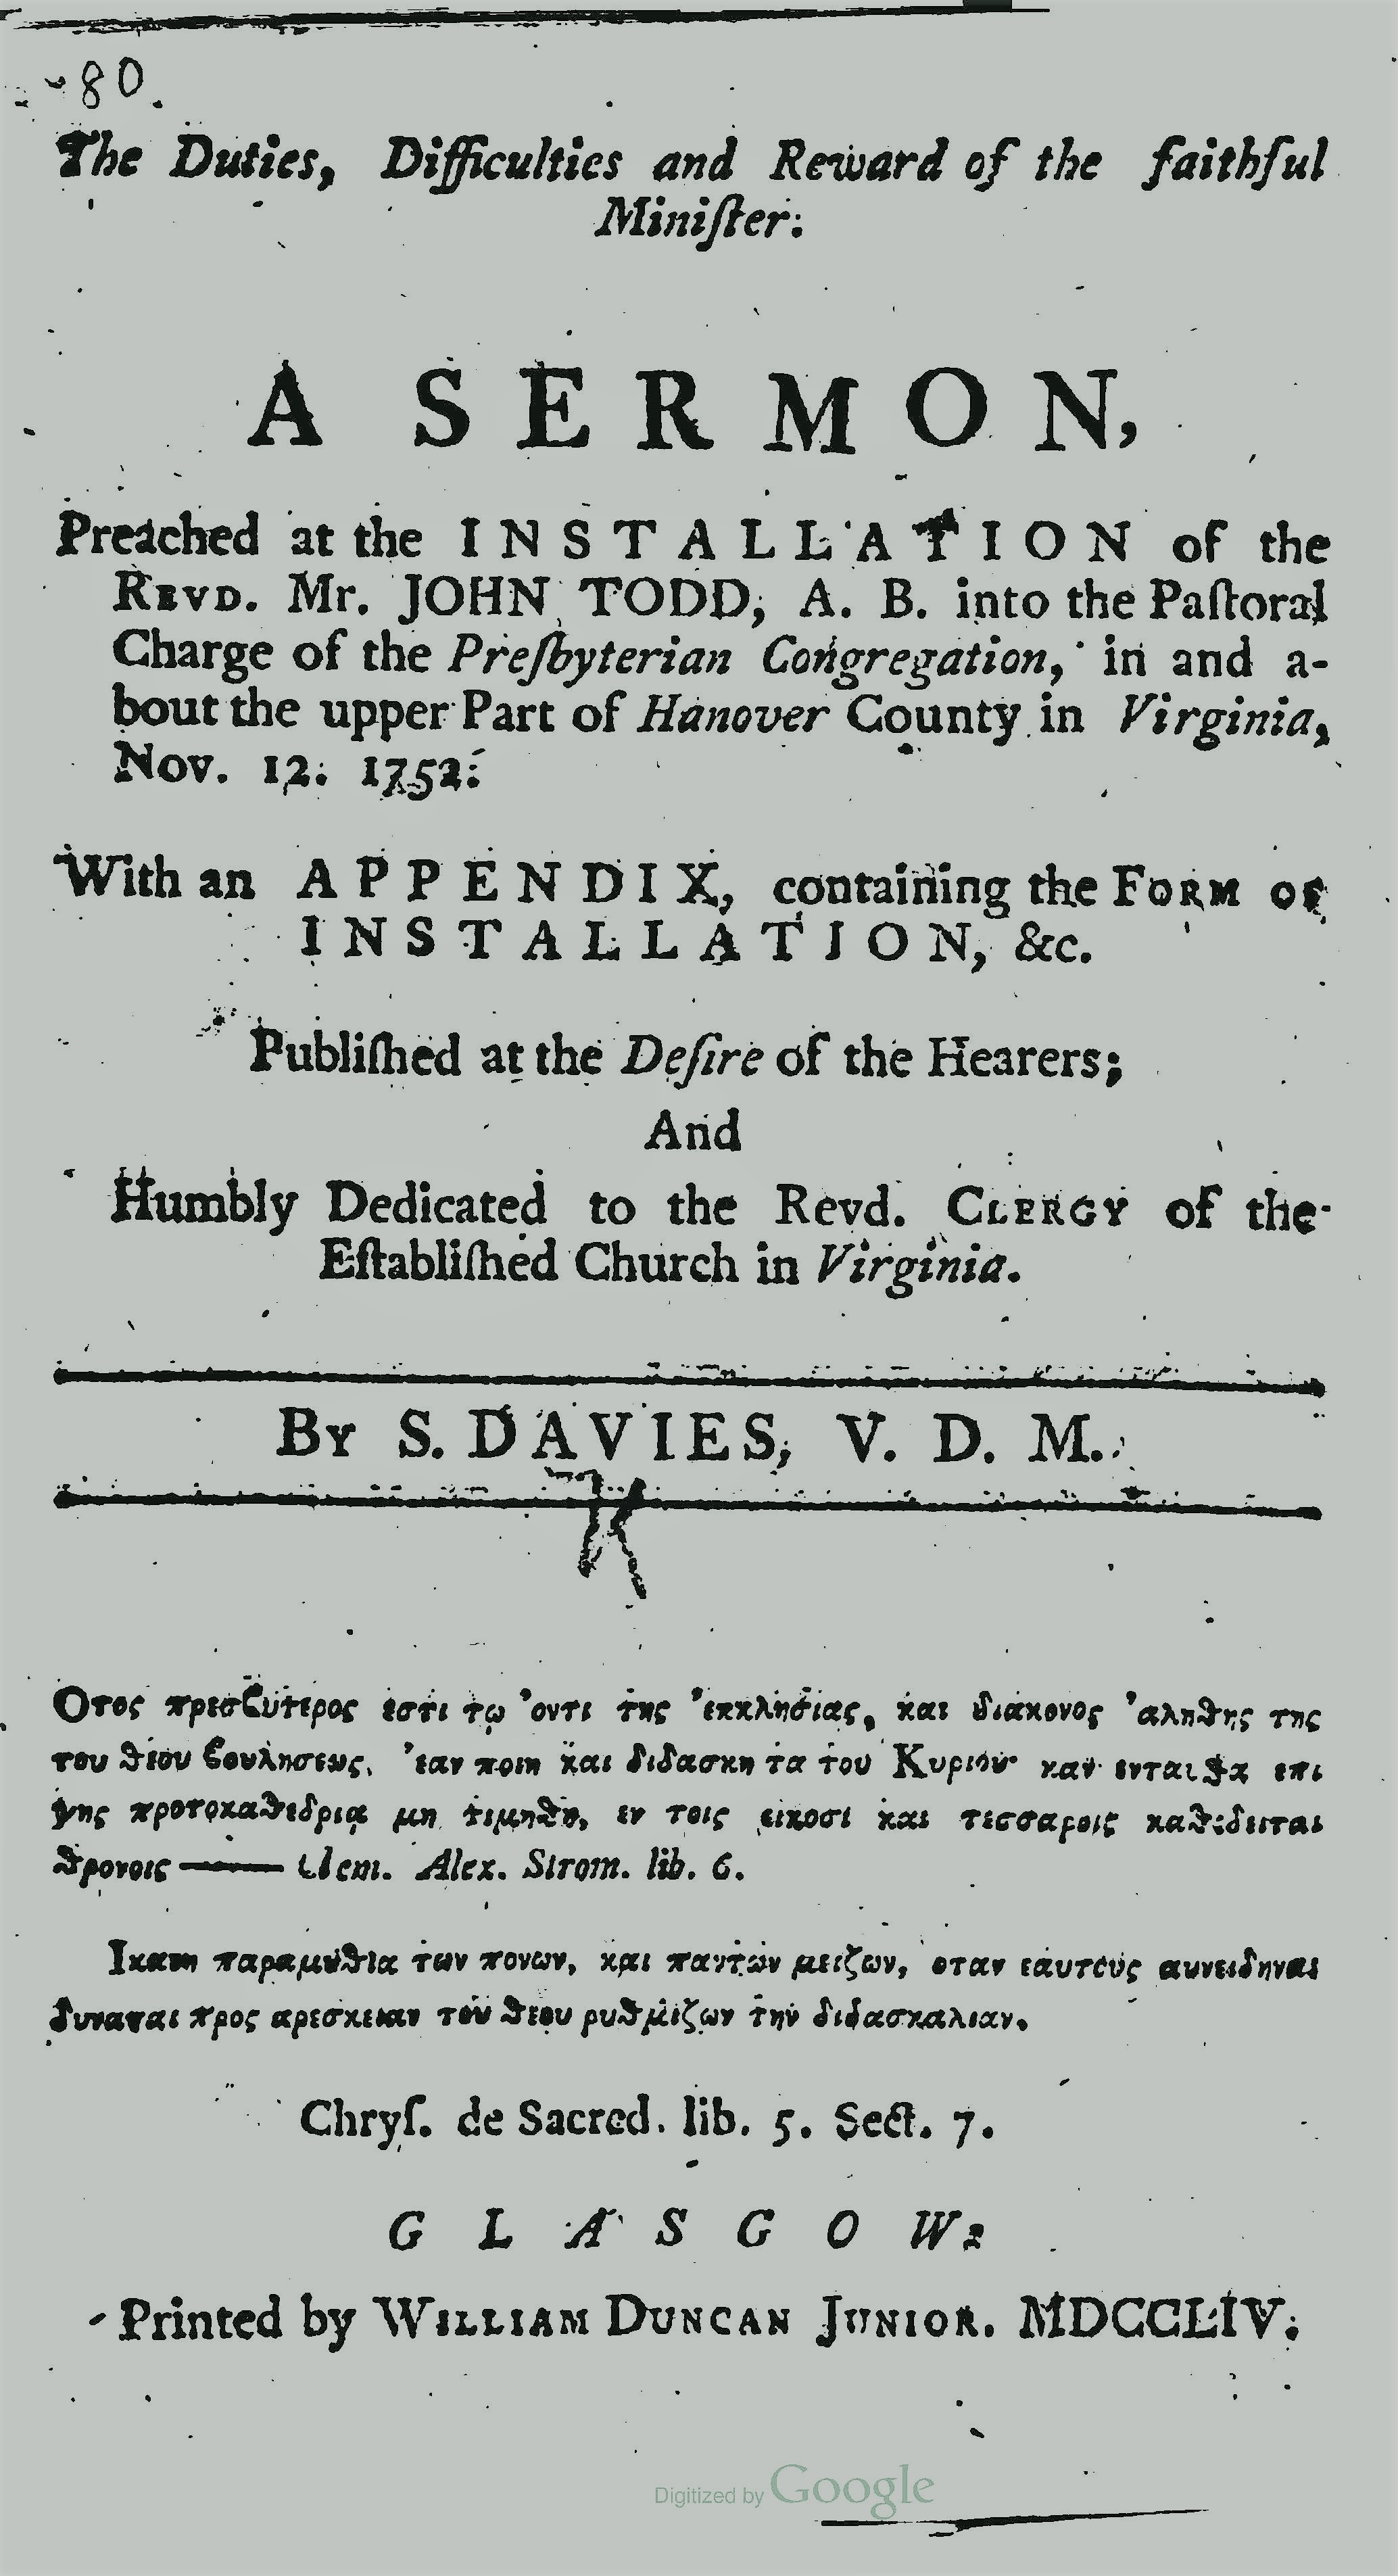 Davies, Samuel, The Duties Difficulties and Reward of the Faithful Minister Title Page.jpg